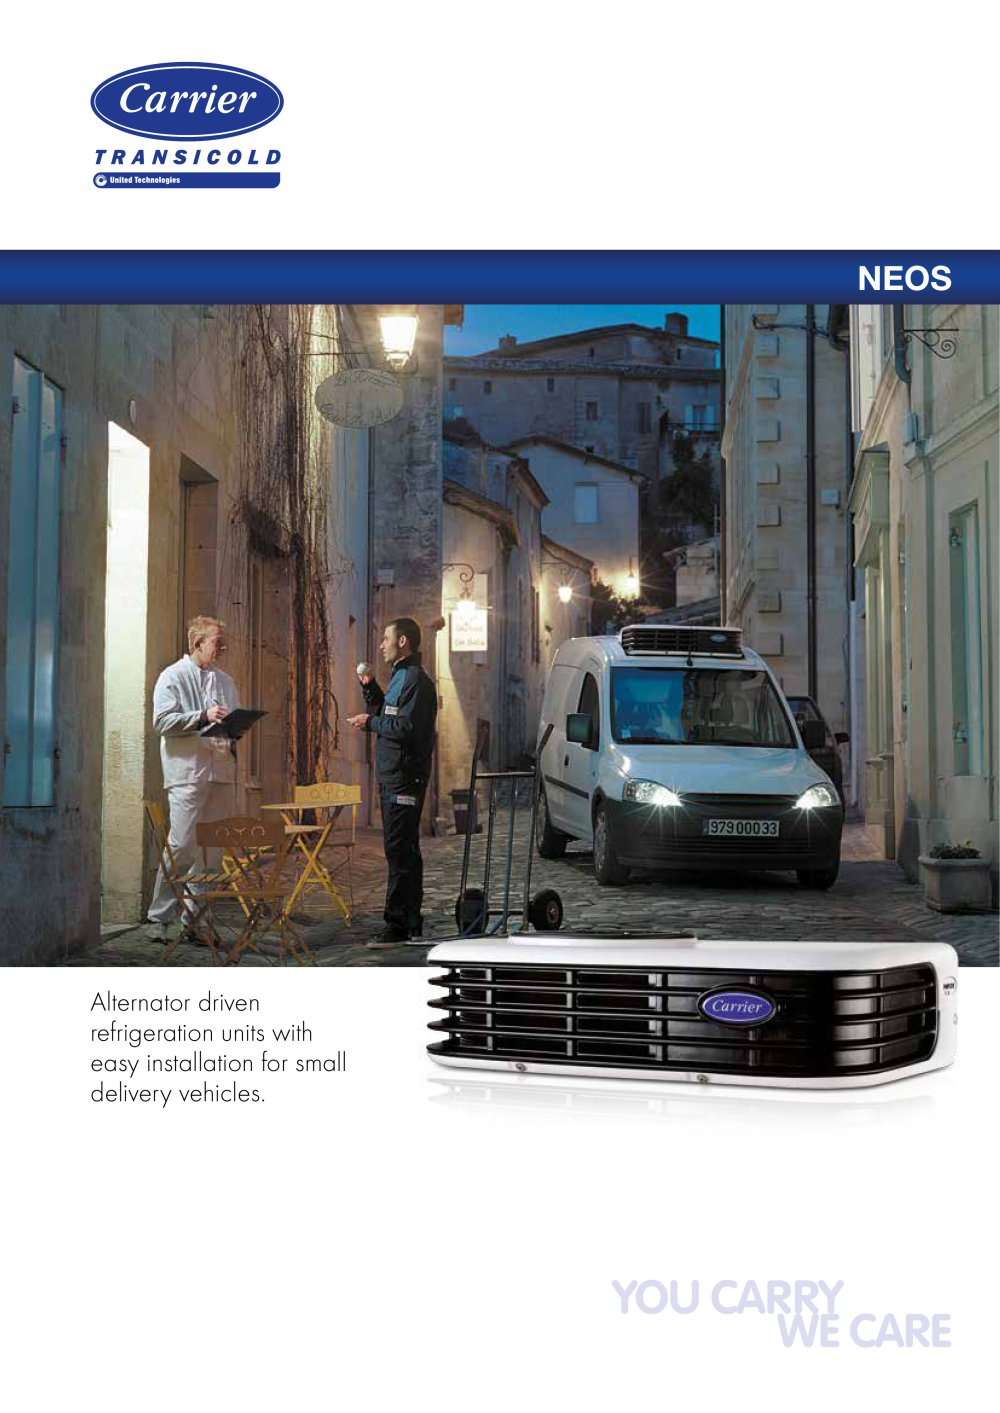 europe wiring diagrams wiring diagram carrier neos 100 wiring discover your wiring neos 100 carrier transicold europe pdf catalogue